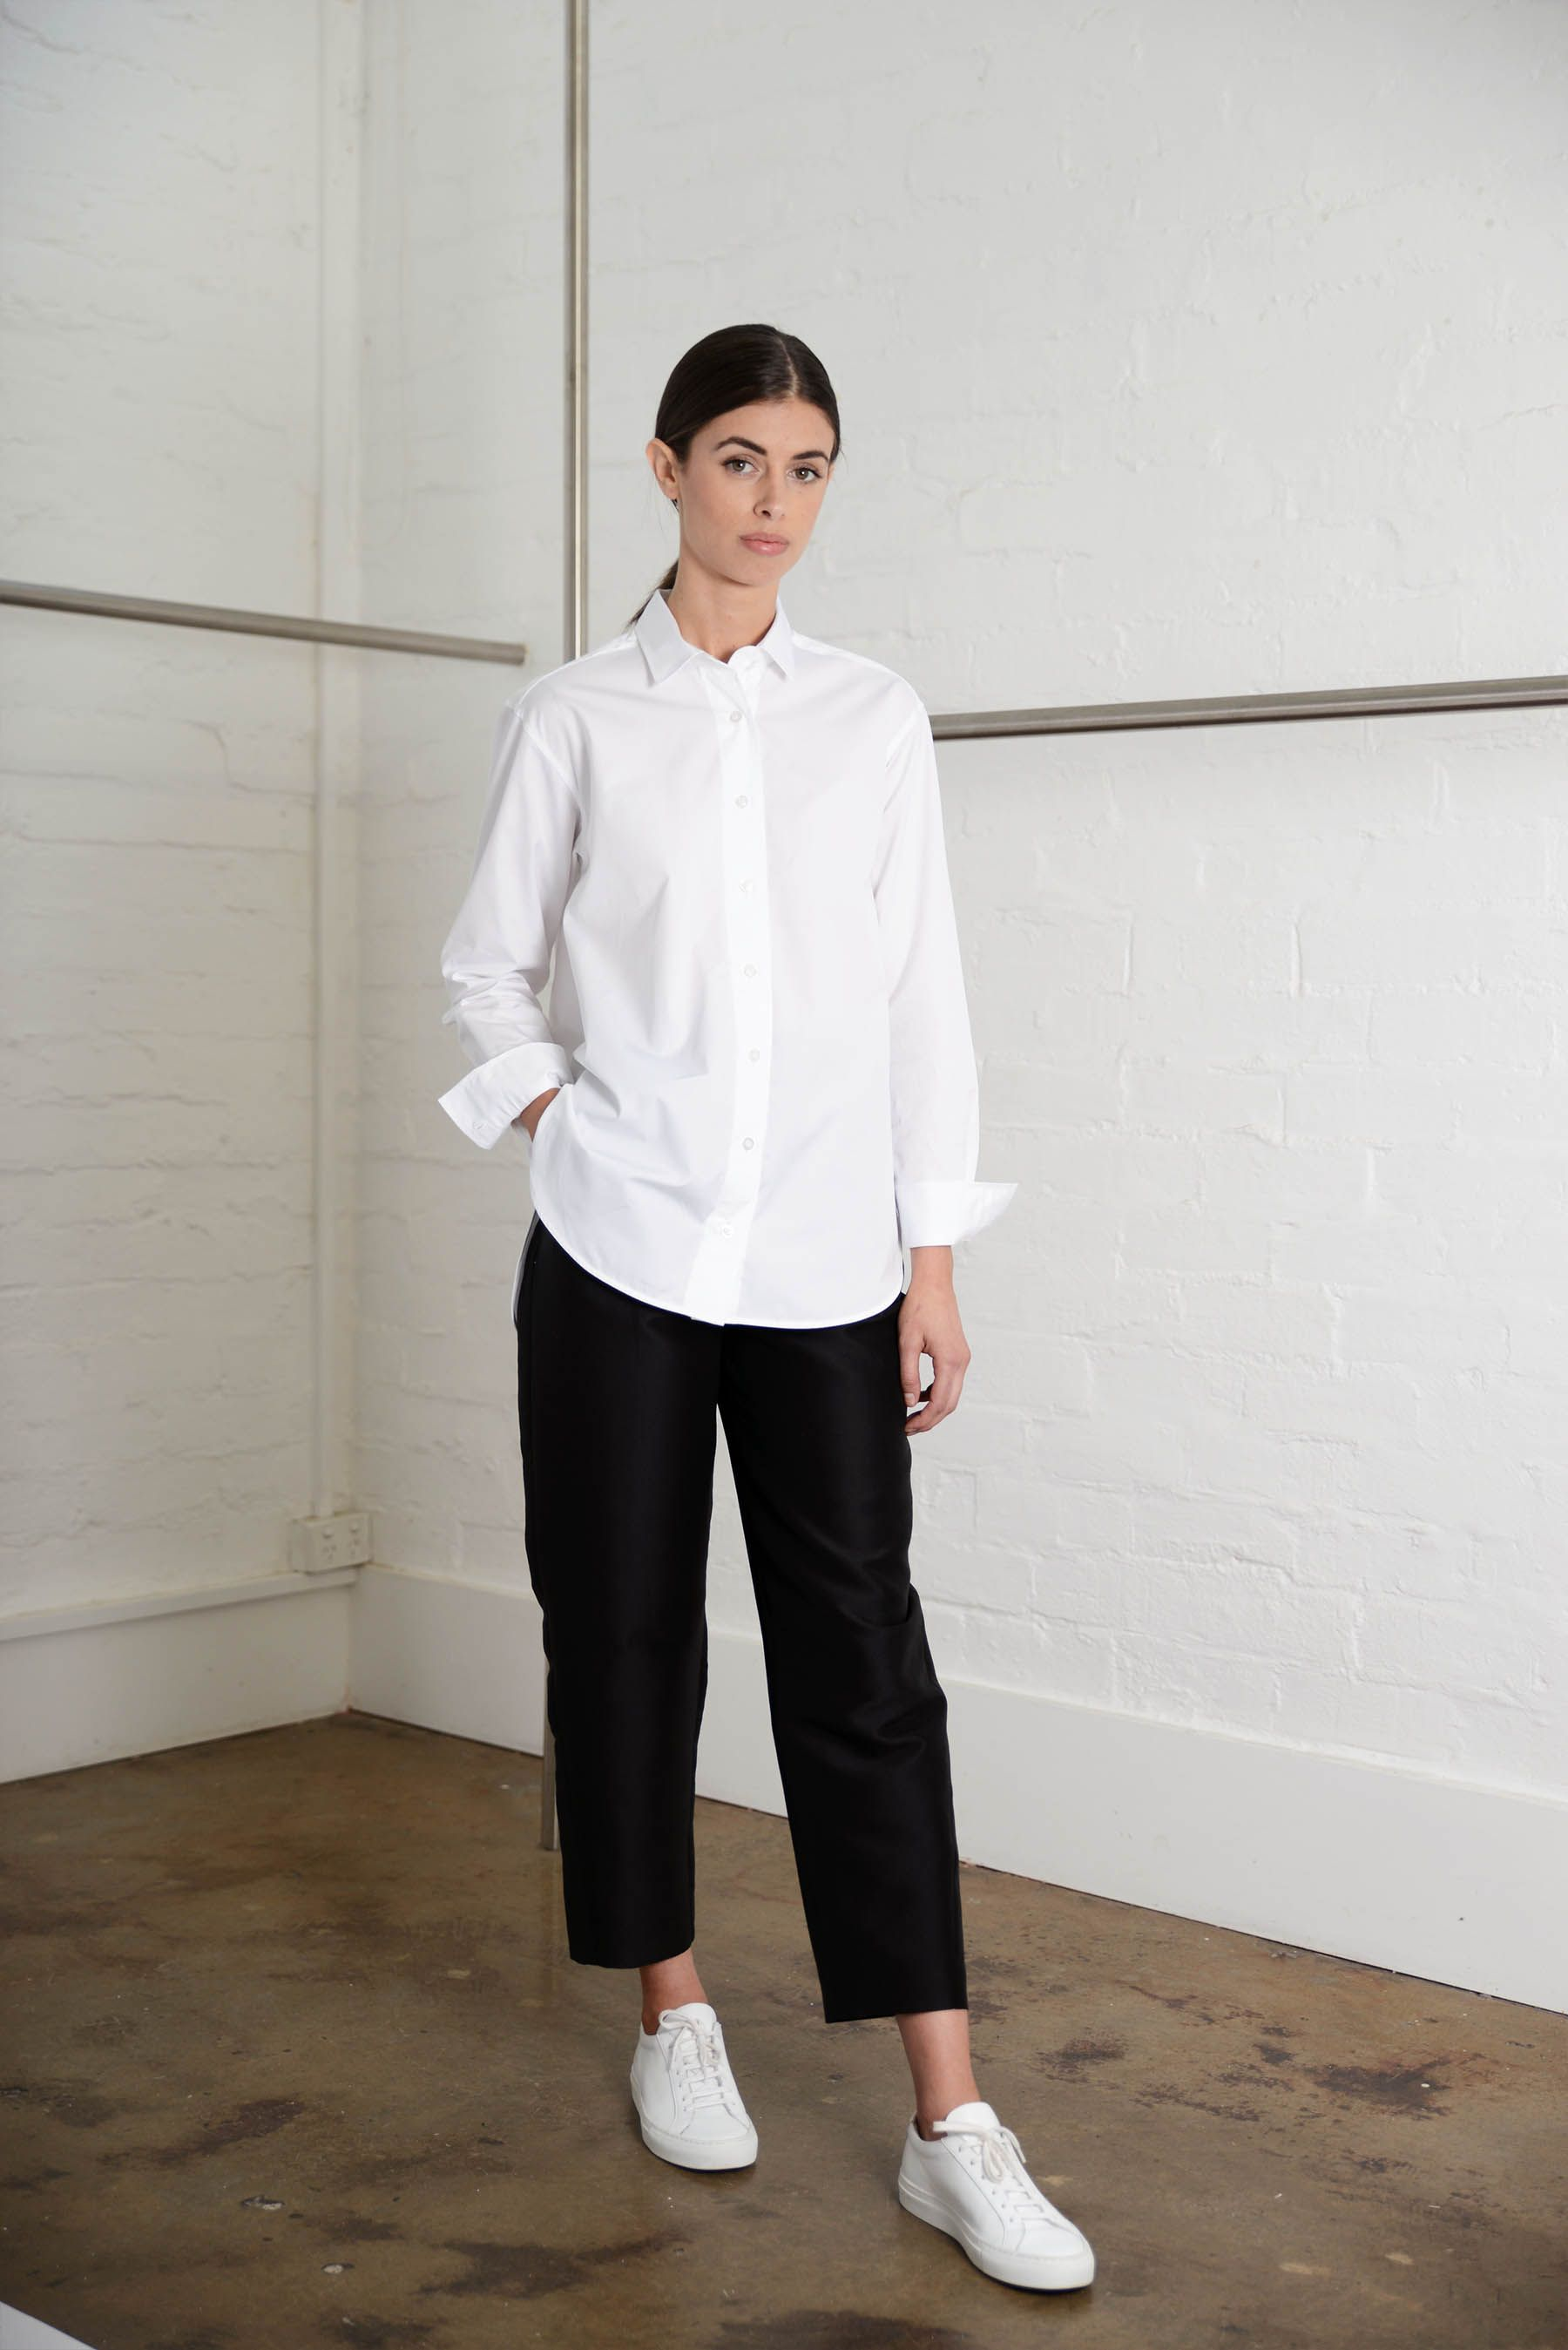 New Designer Toteme Is The Creation From Swedish Fashion Journalist And Blogger Elin Kling And Her Husband Karl Lindman The Collection Is Defined By So Stilar